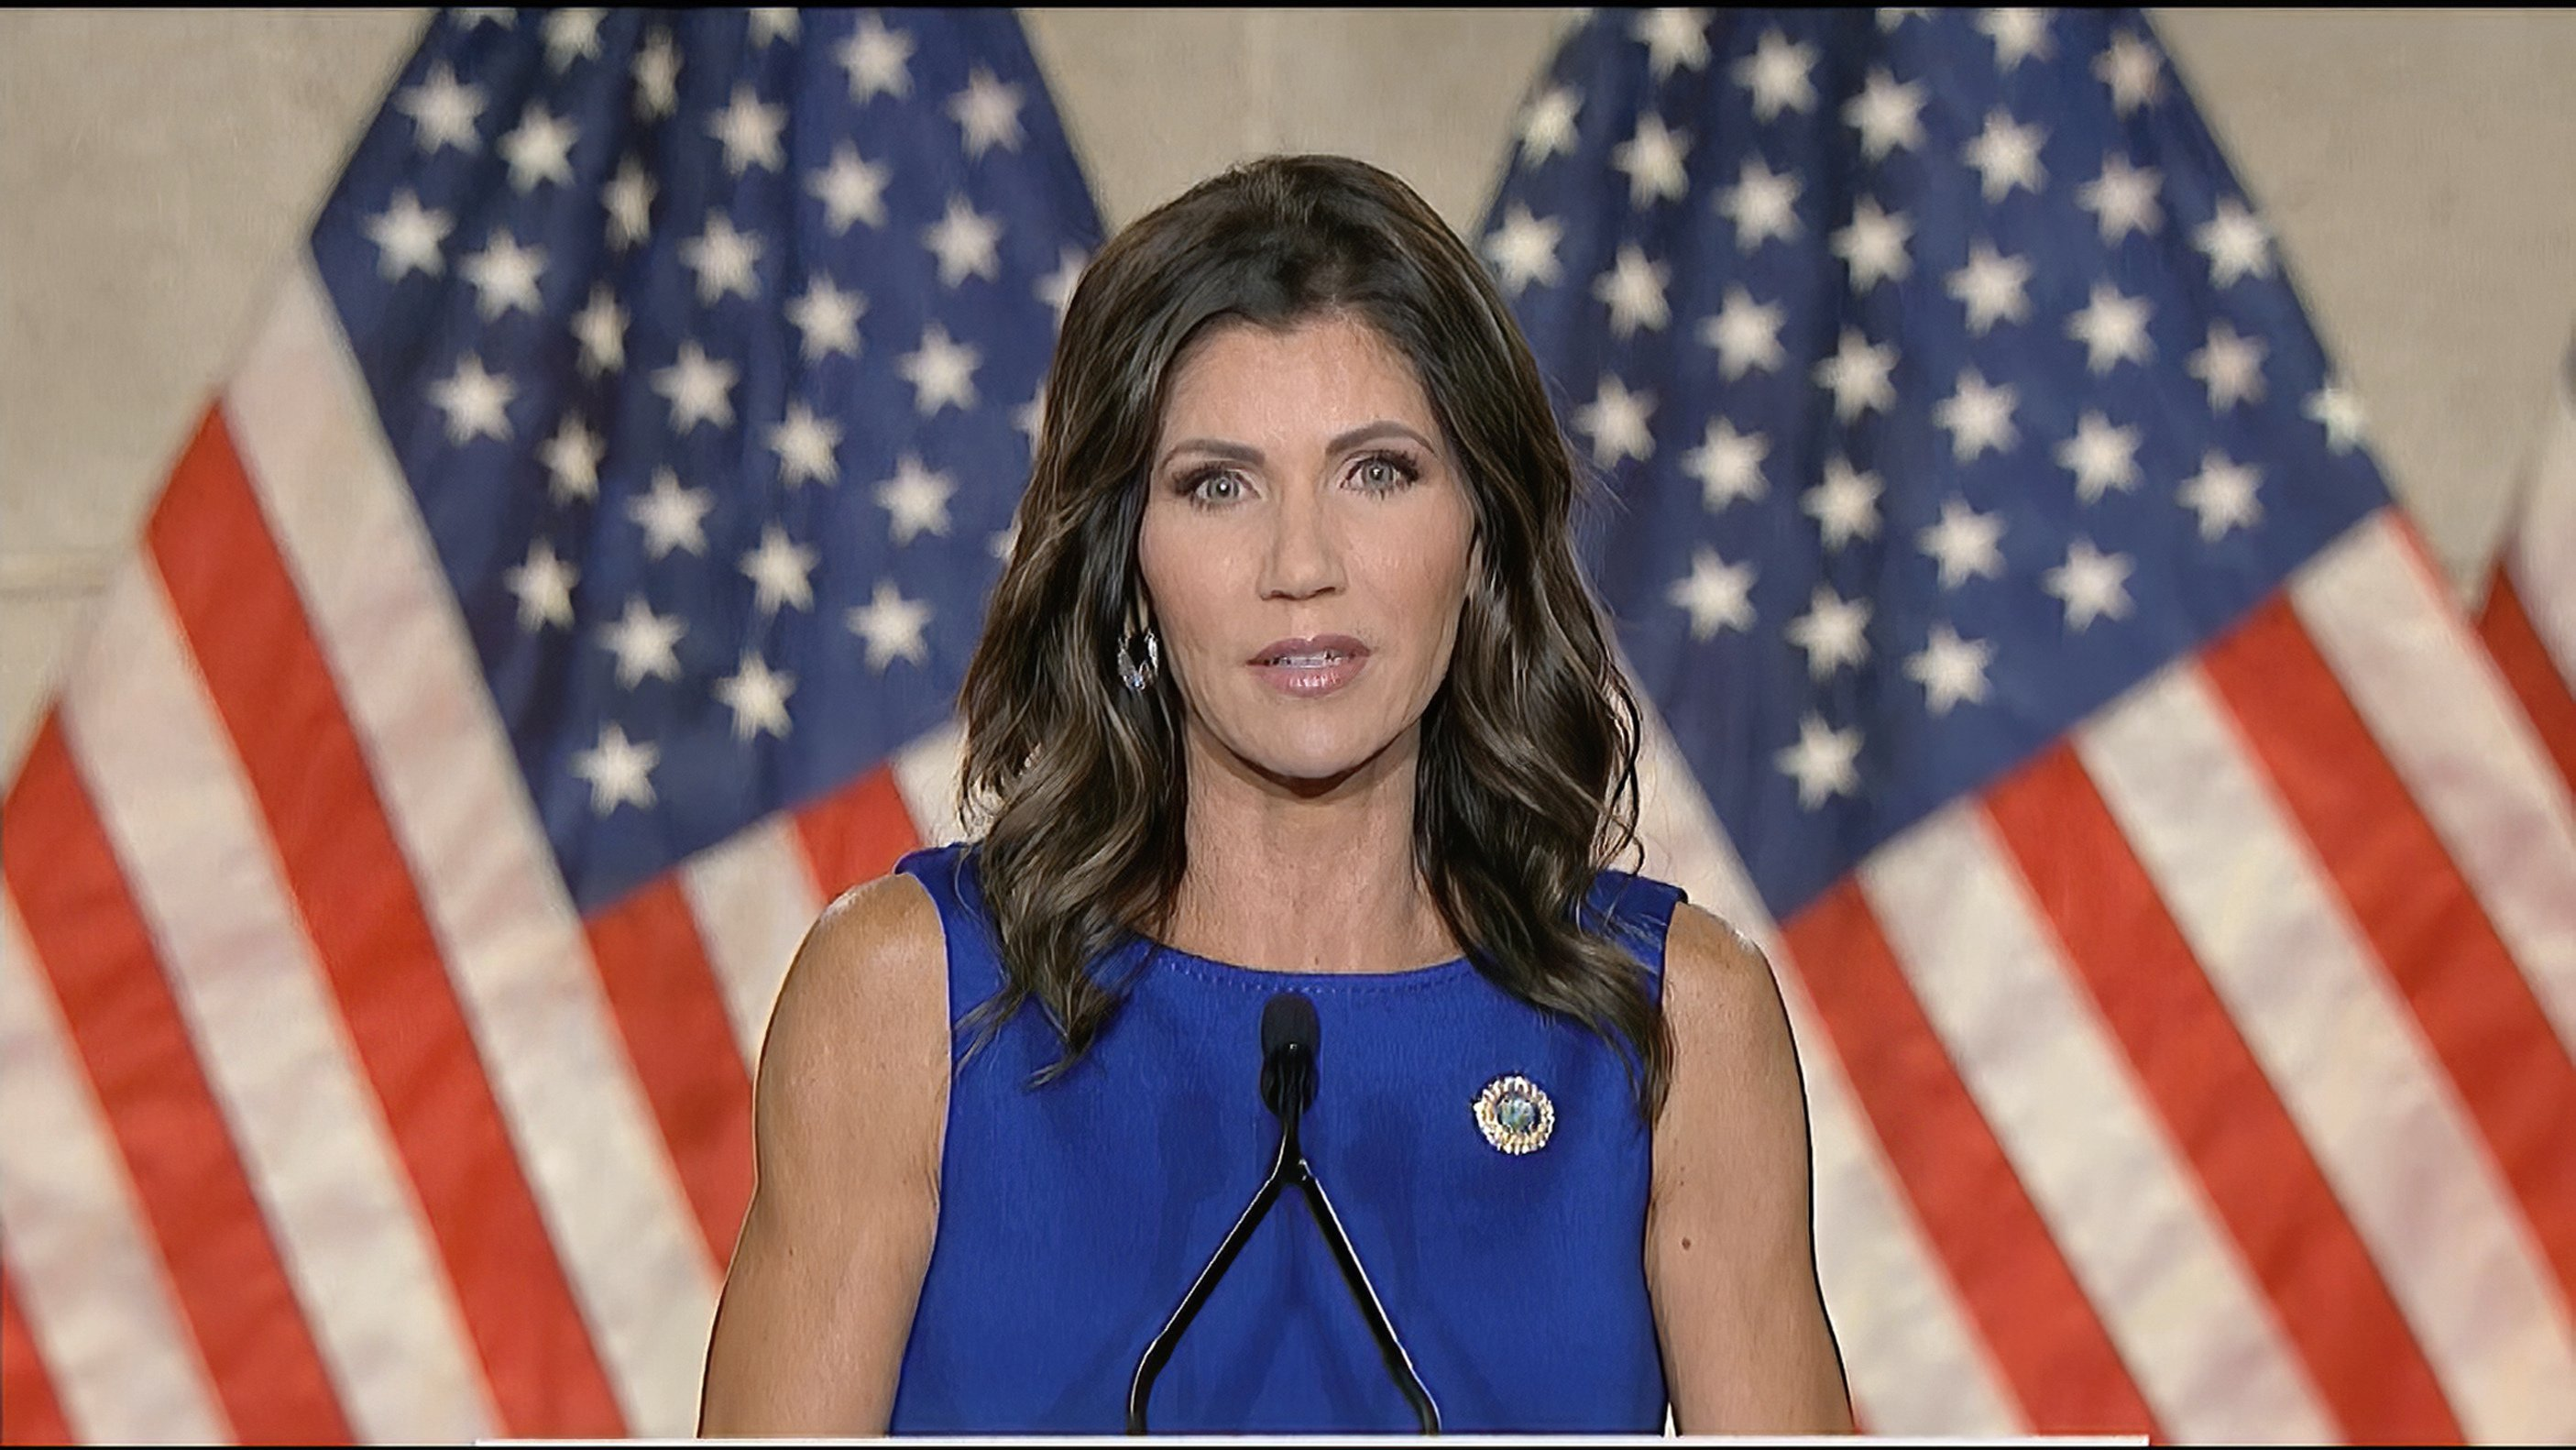 Noem's pitch to aid Trump seems to benefit own campaign fund